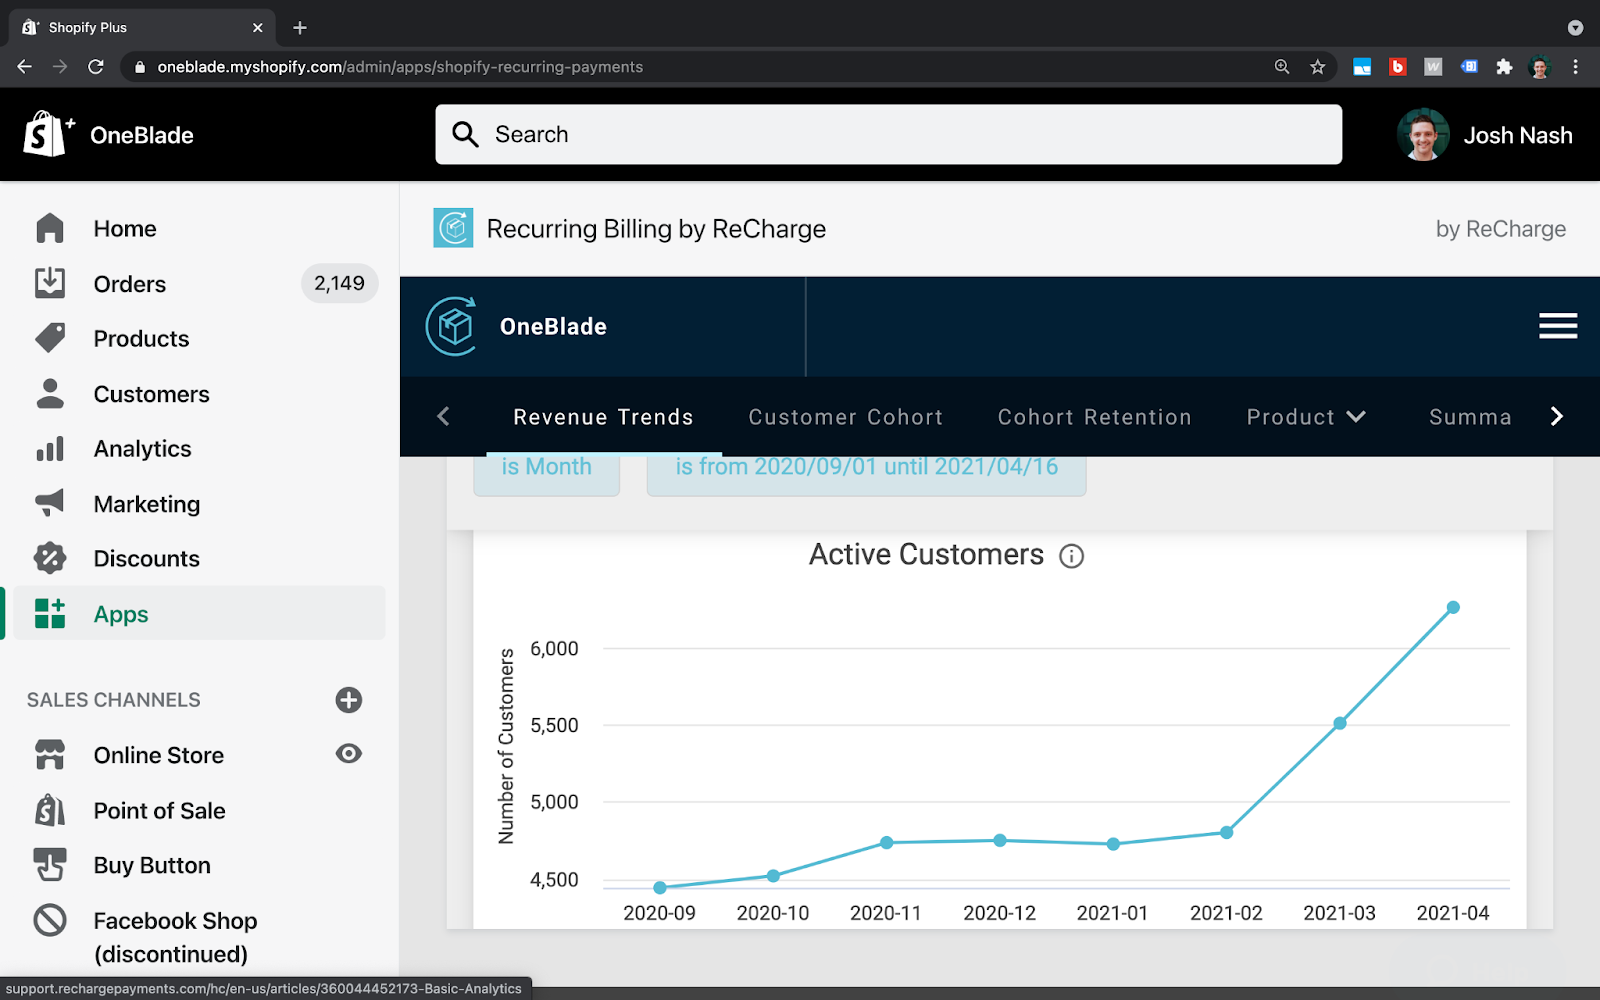 OneBlade's ReCharge recurring billing dashboard